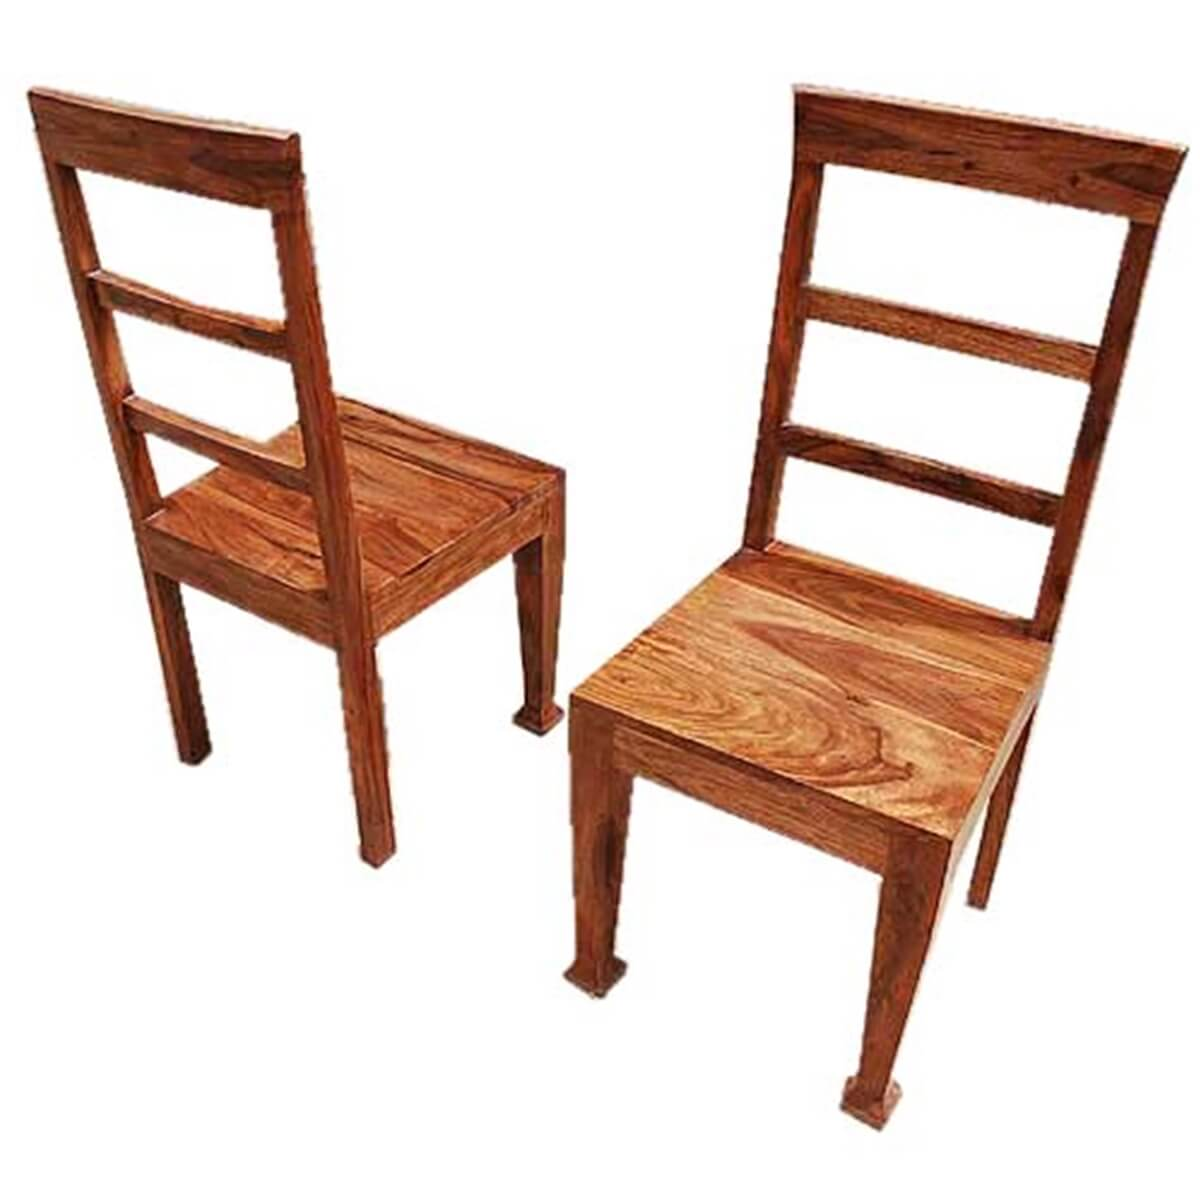 Unfinished Dining Room Chairs Rustic Furniture Solid Wood Dining Table And Chair Set